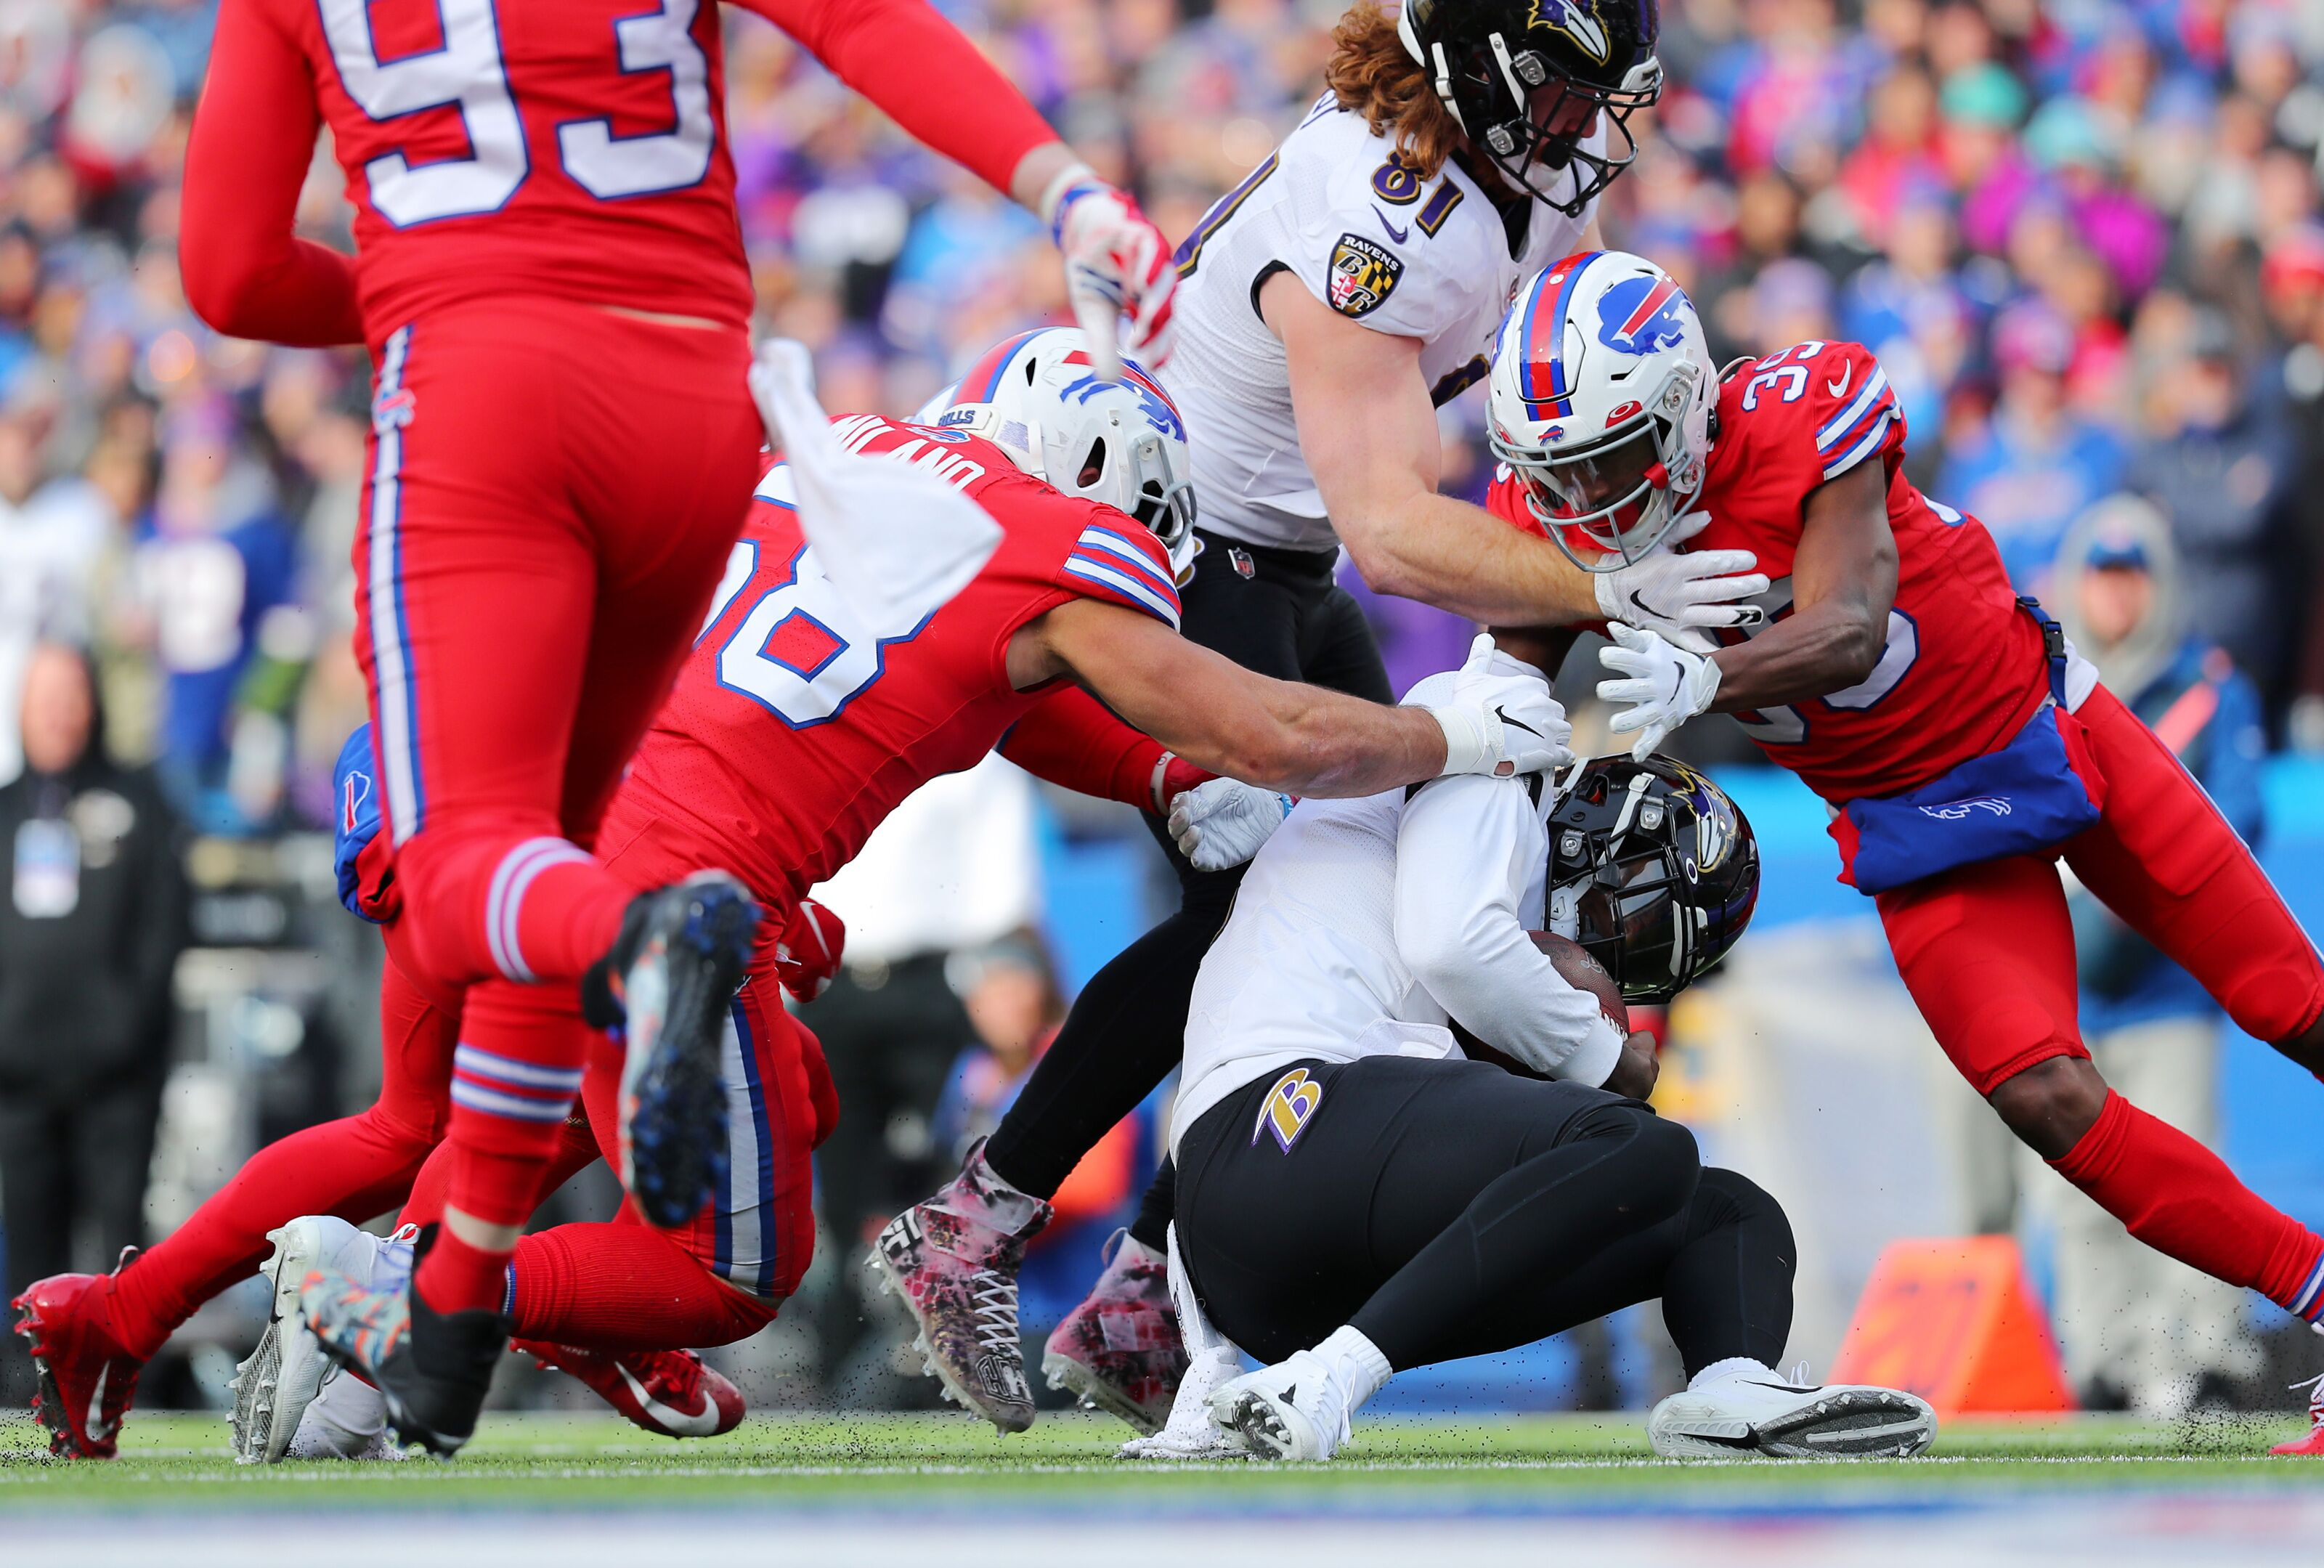 Buffalo Bills could get revenge on Ravens in postseason